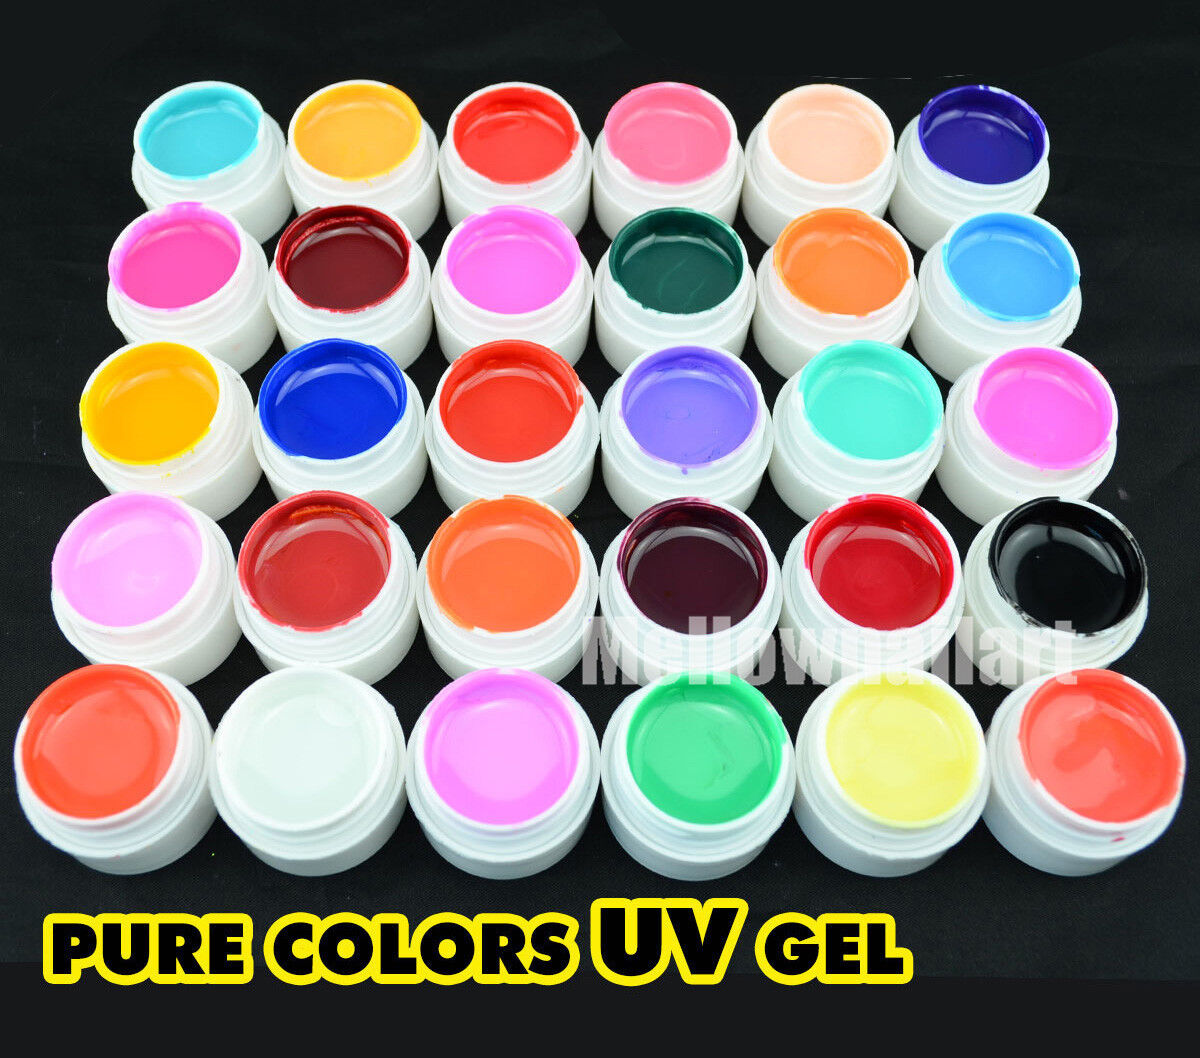 20 pure colors shiny extension nail art